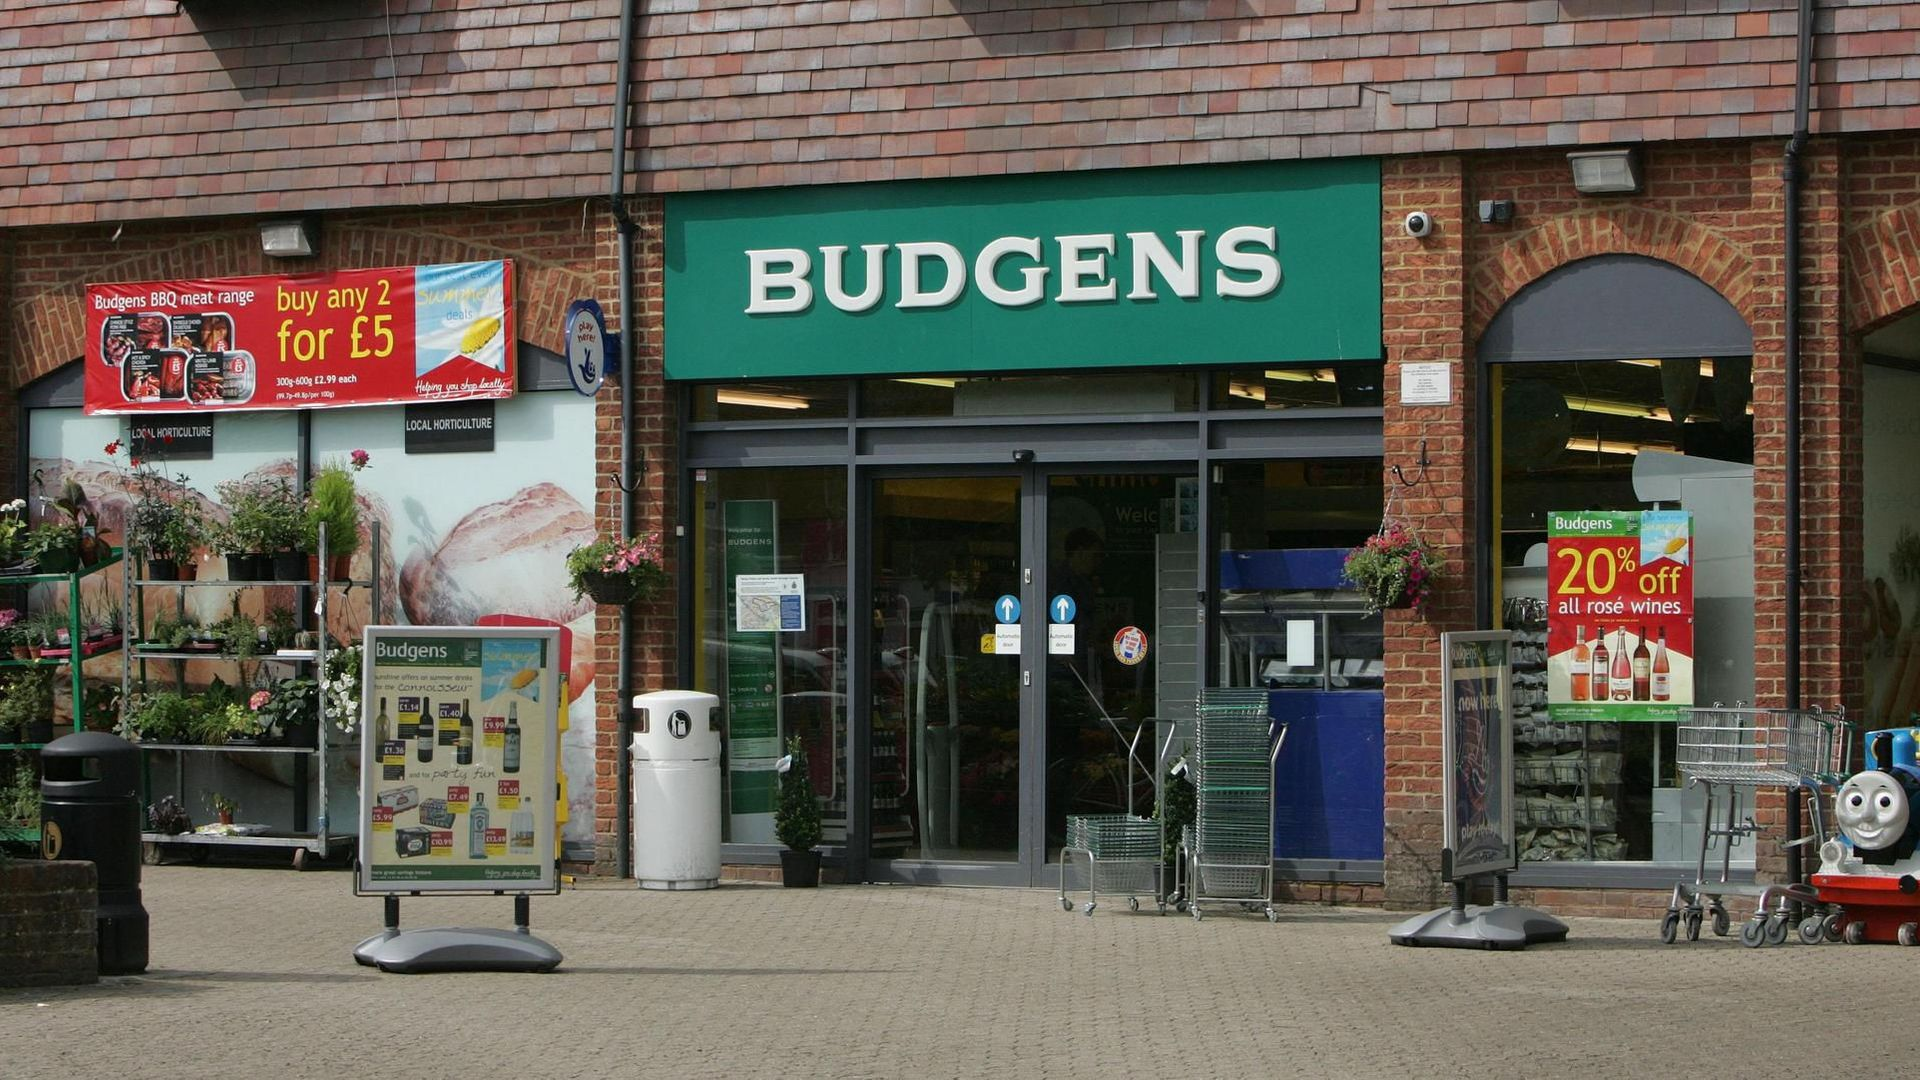 budgens stores ltd global expansion recommendations The company unveiled its strategy and key initiatives to achieve sustainable, long-term growth across its global portfolio of brands and businesses.